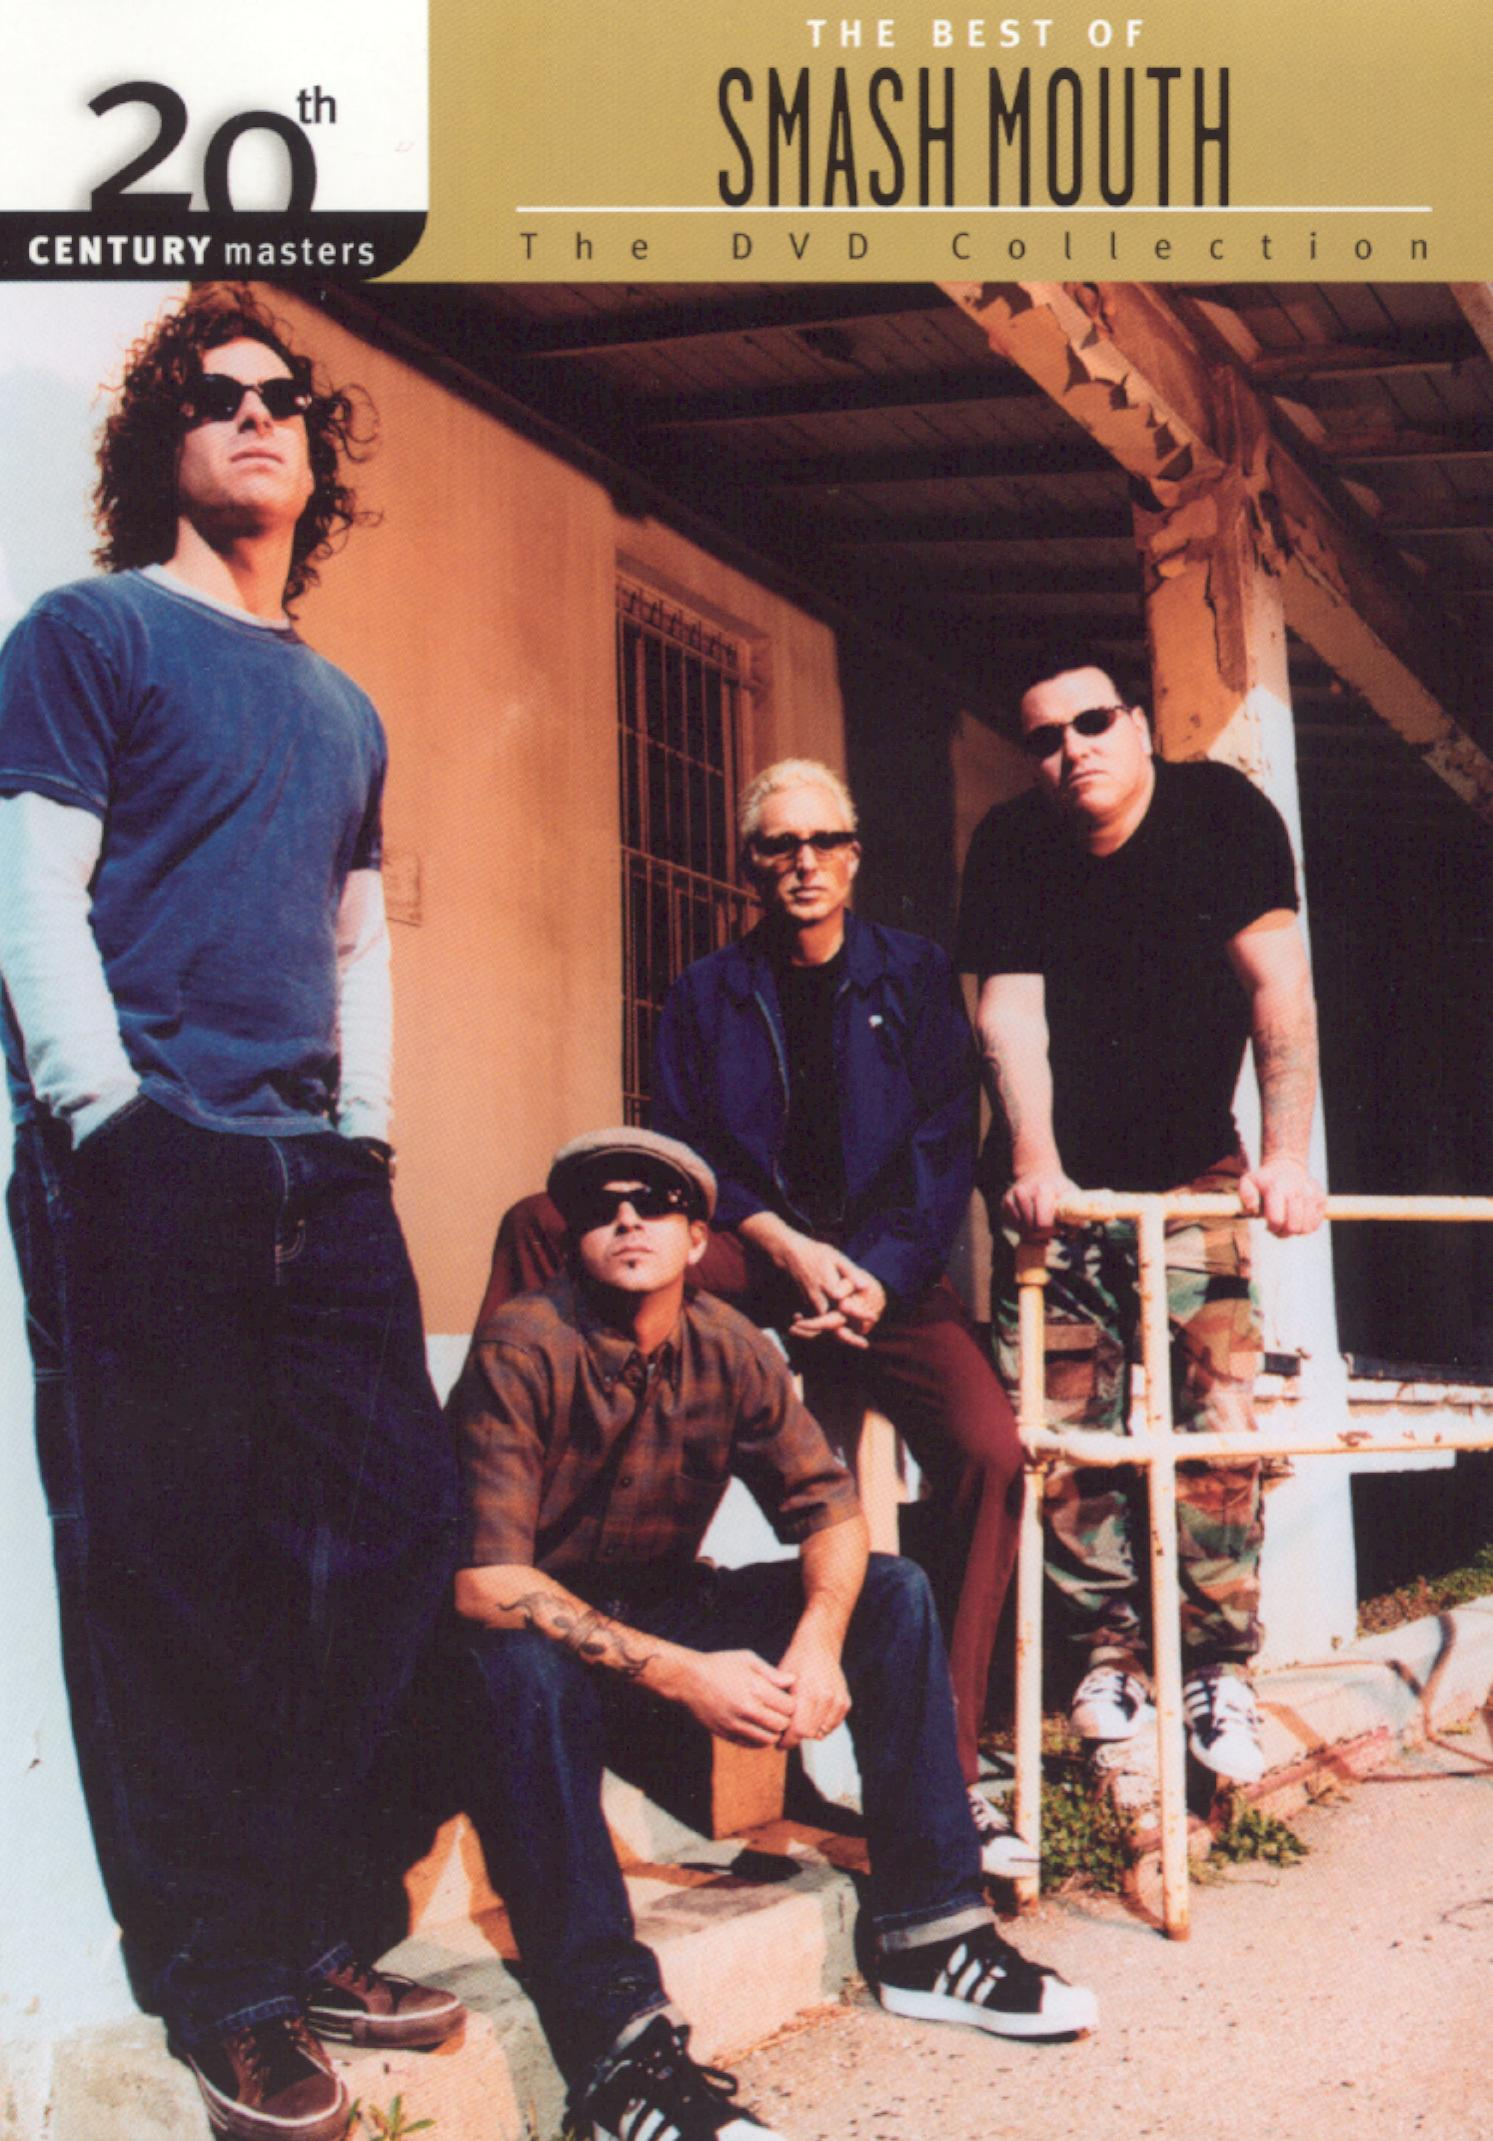 20th Century Masters: The Best of Smash Mouth